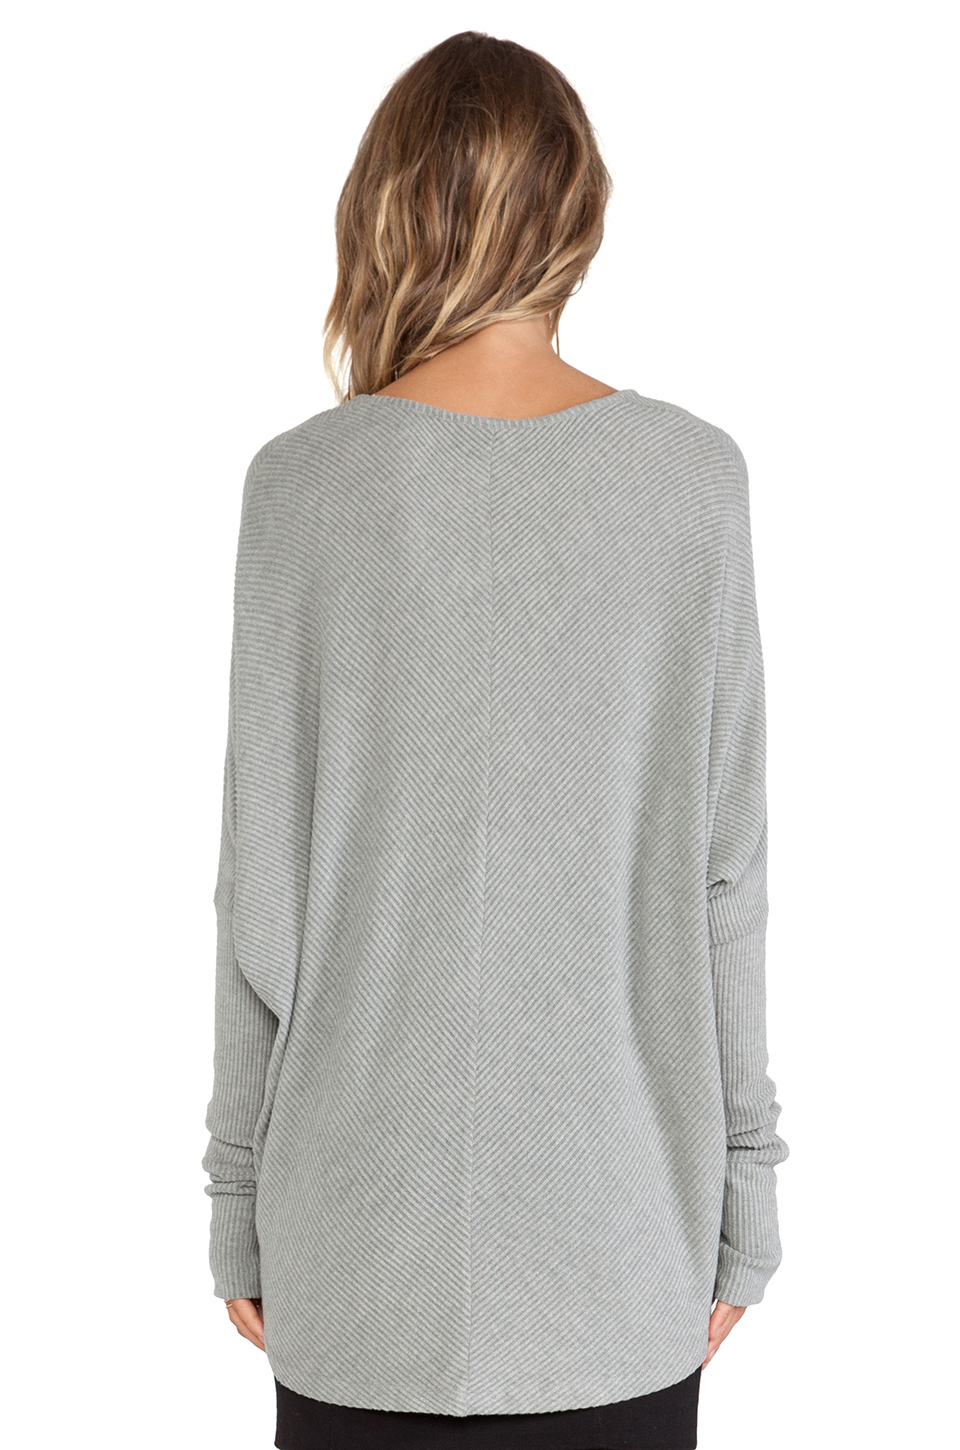 sen grace pullover sweater in gray heather grey lyst. Black Bedroom Furniture Sets. Home Design Ideas